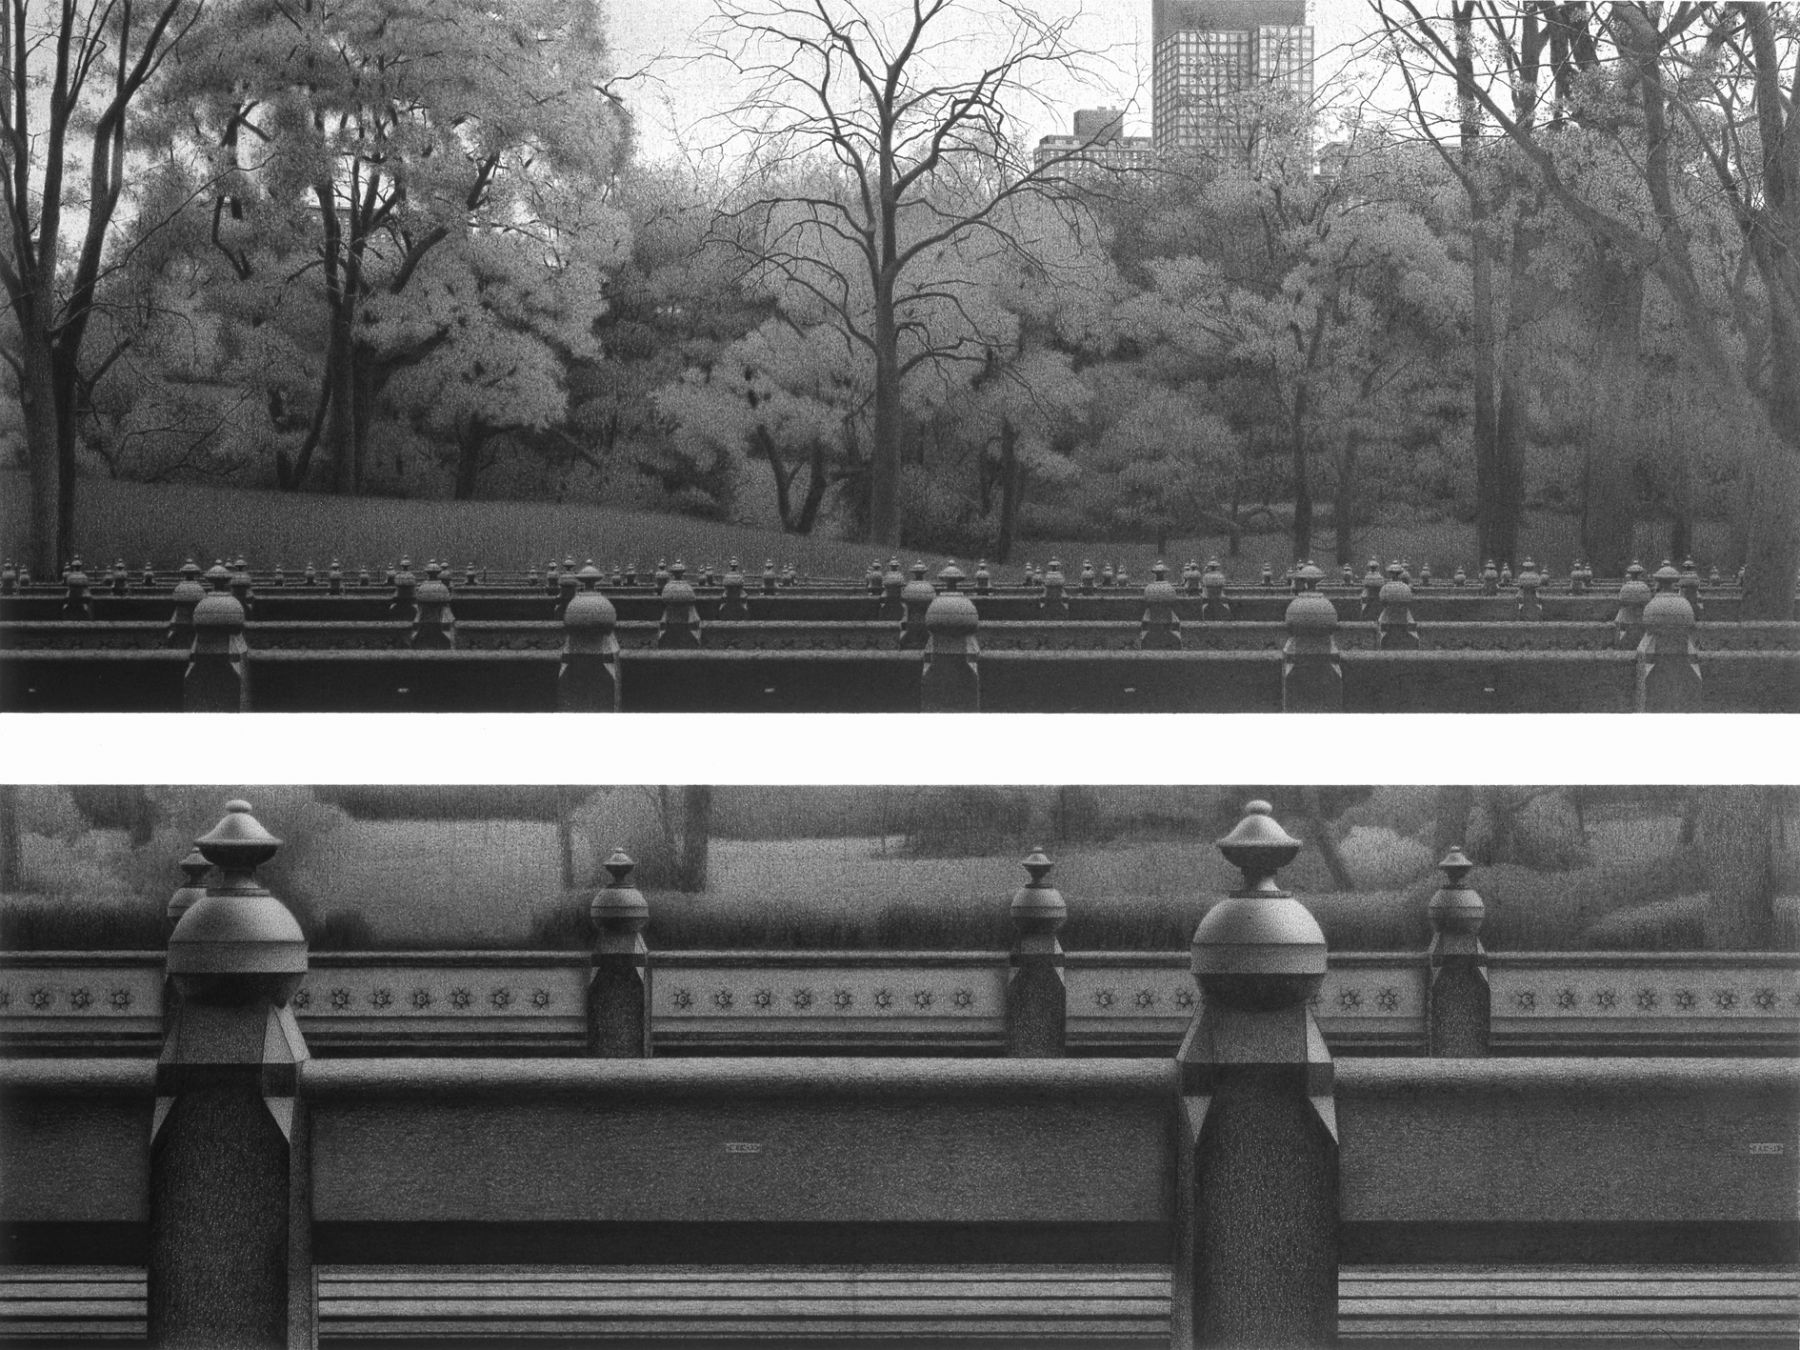 Anthony Mitri 97 Benches (CL 117- CL 214) Central Park, New York, 2005 charcoal on paper 22 x 30 inches, Private Collection